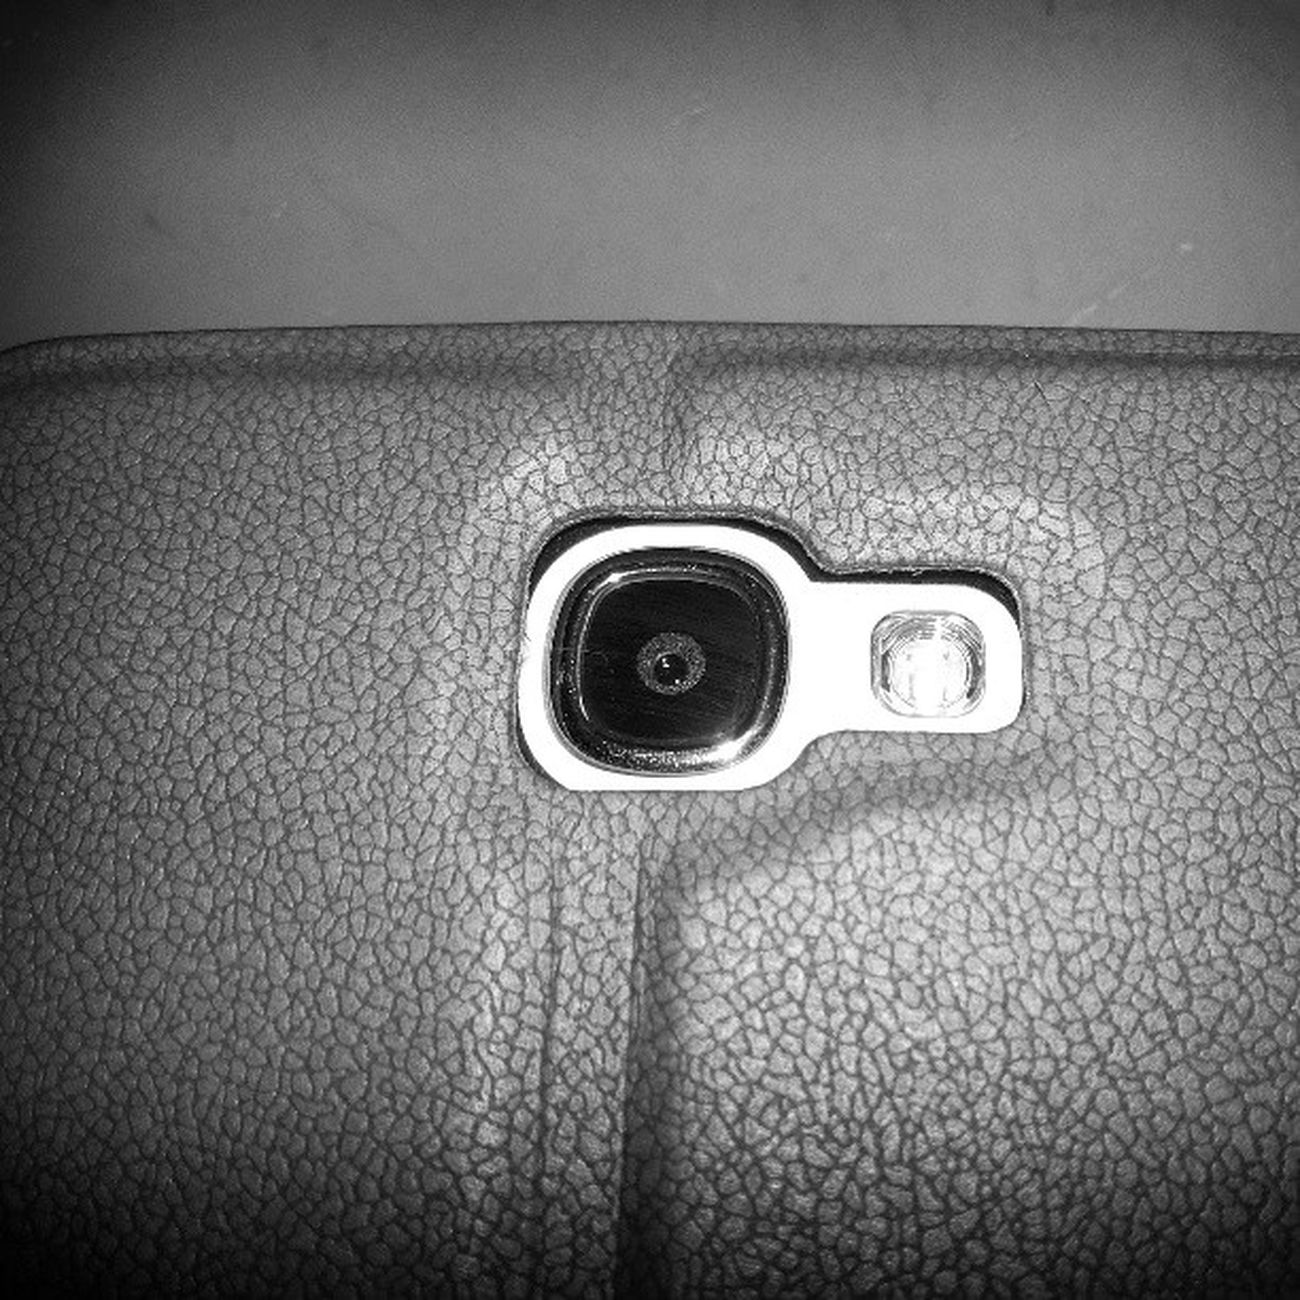 Always this Galaxy NOTE 2 shoots somthing..., But 2dae I shooted it...!!! Hahaha *evil laugh* lol SAMAUNG Galaxy Note 2 Shooted By  Grand Duos Hahah